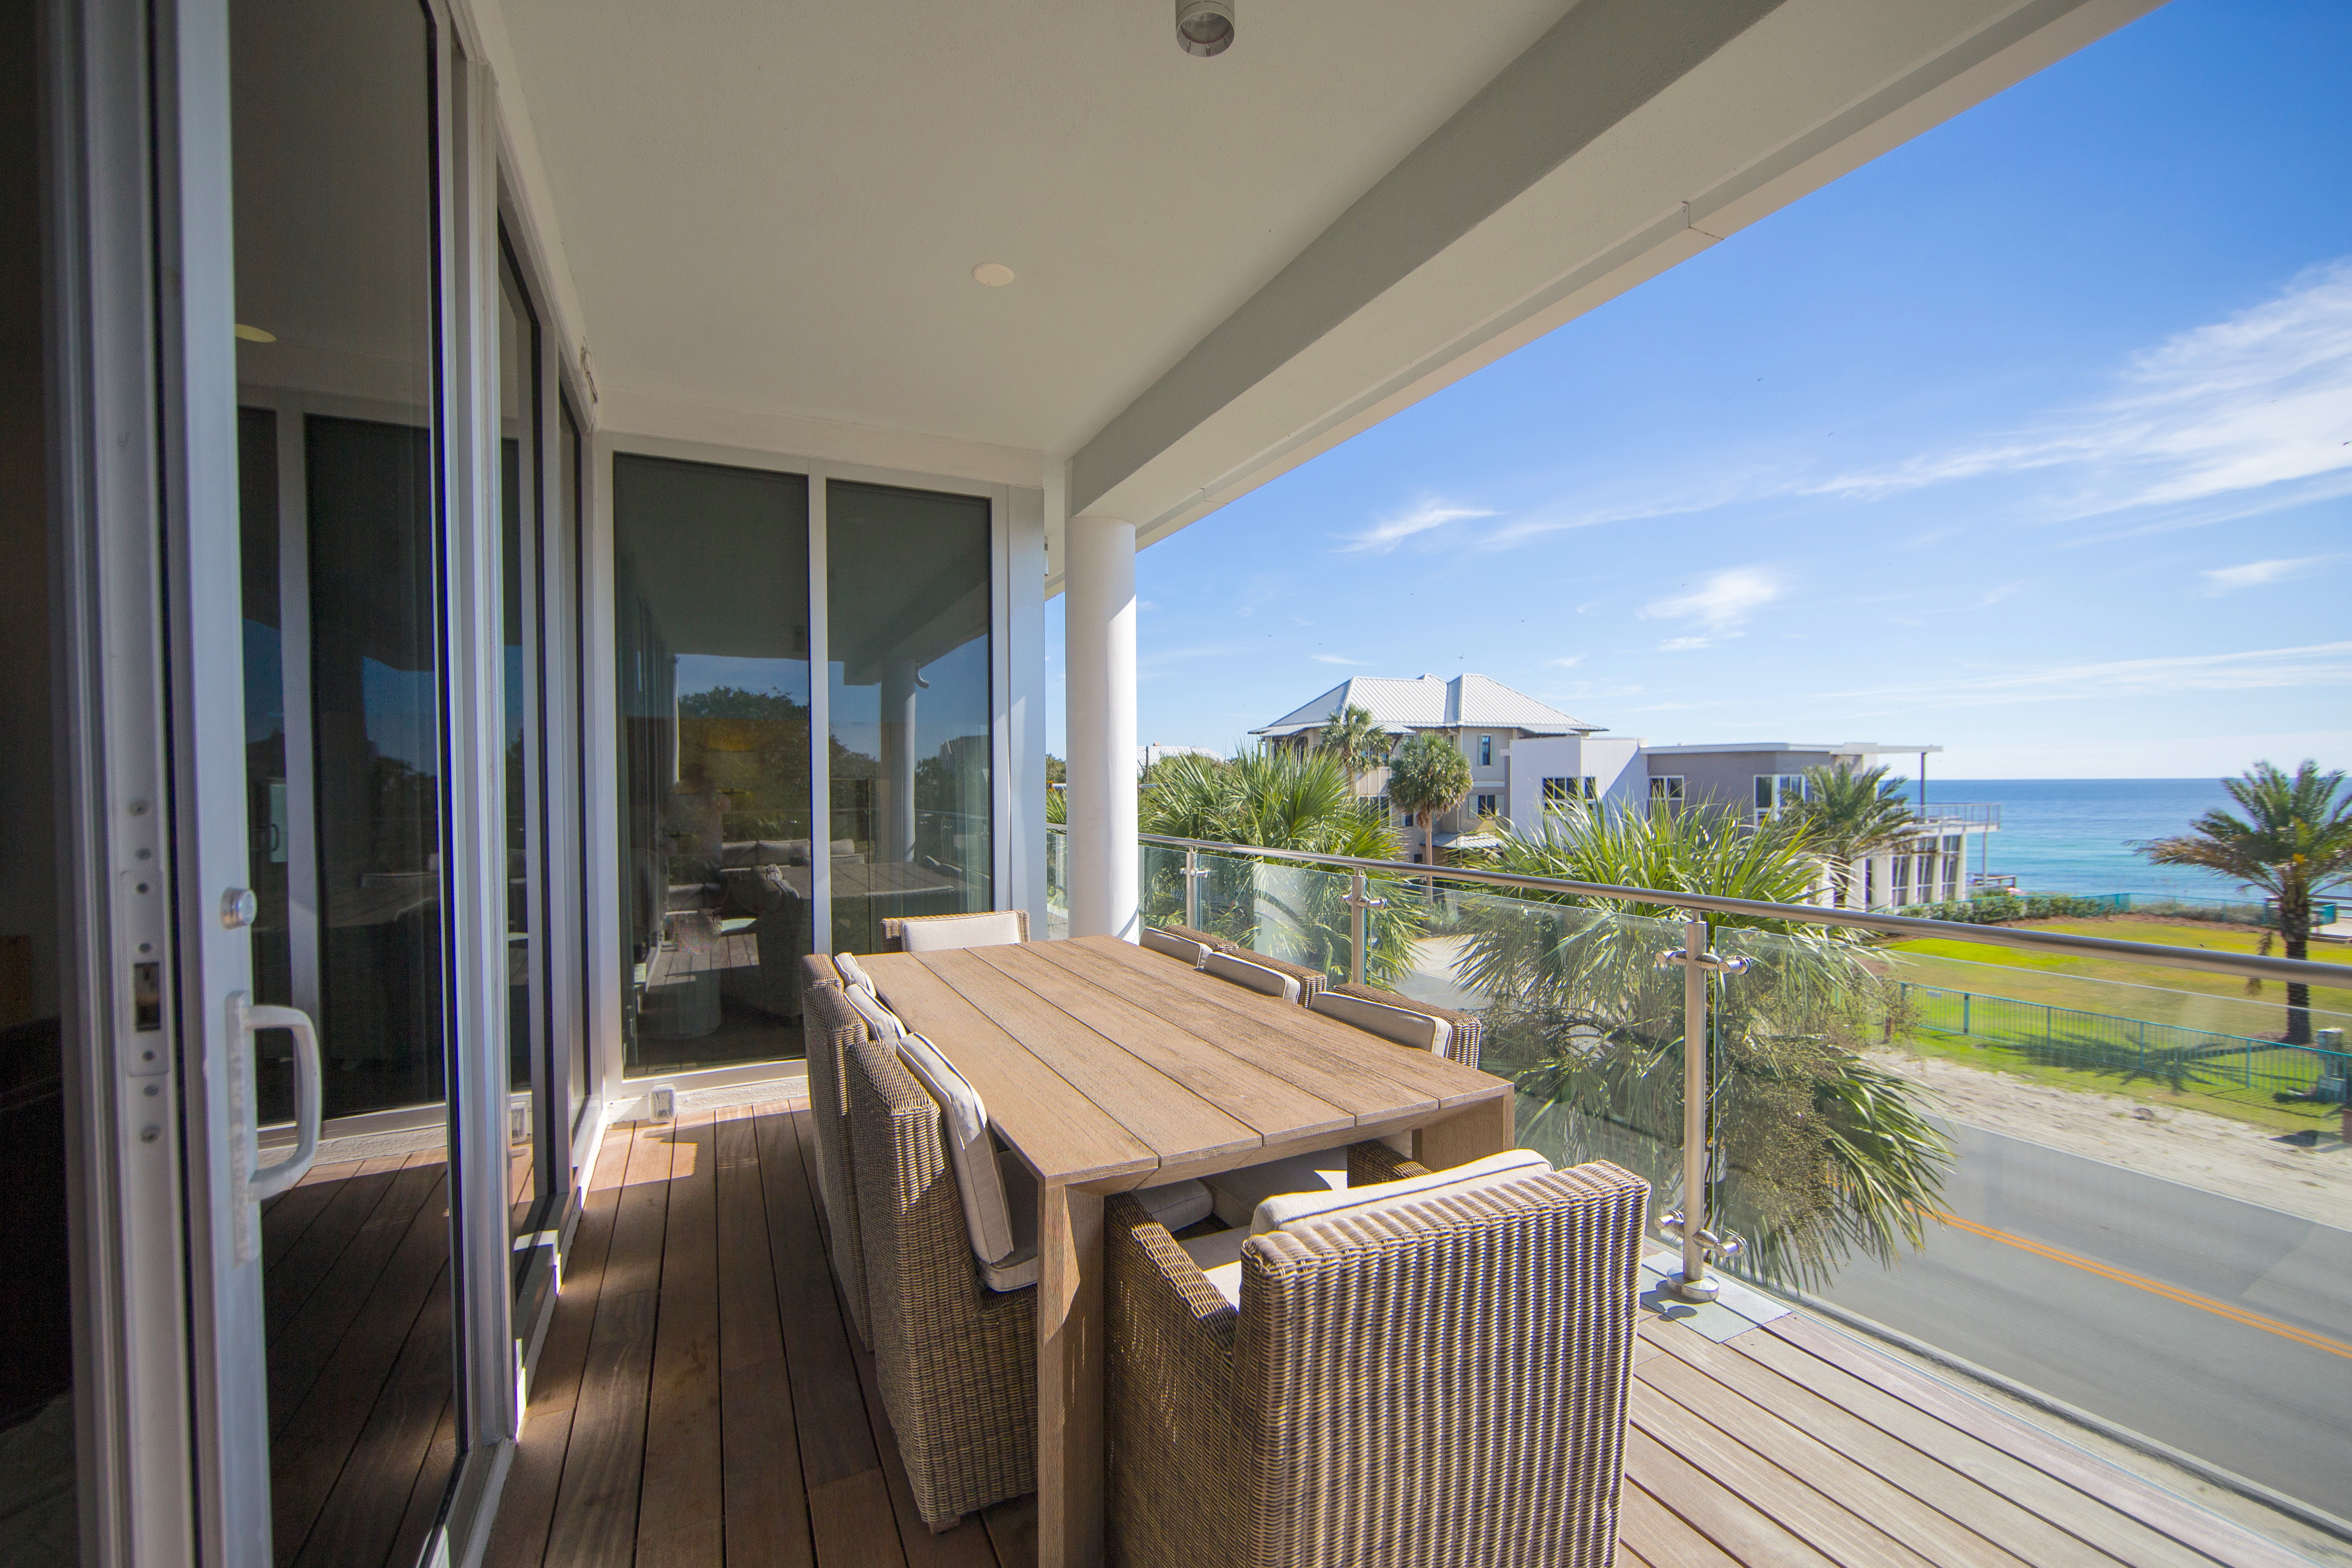 Gorgeous, Gulf Views from the balcony of Viridian 203